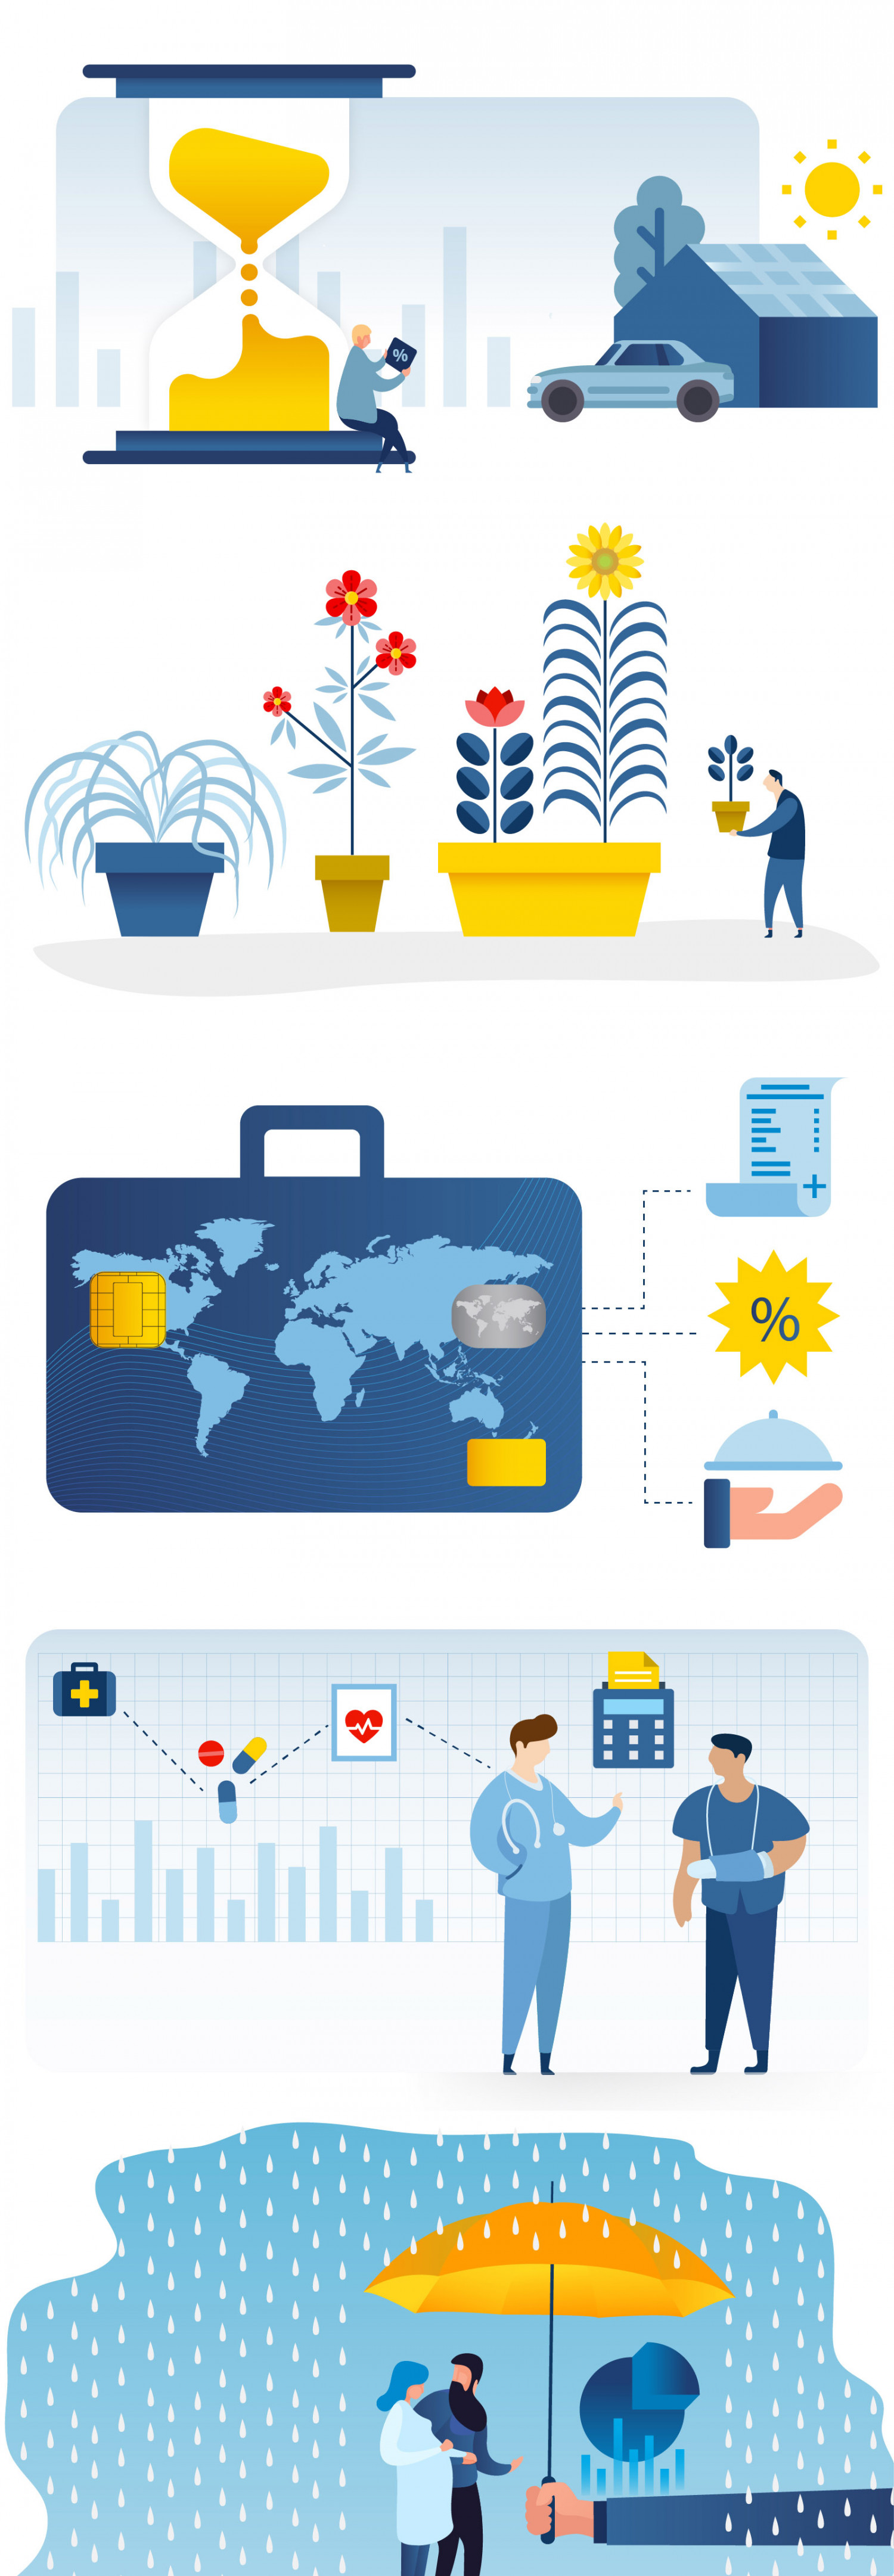 Prudential illustrations Infographic